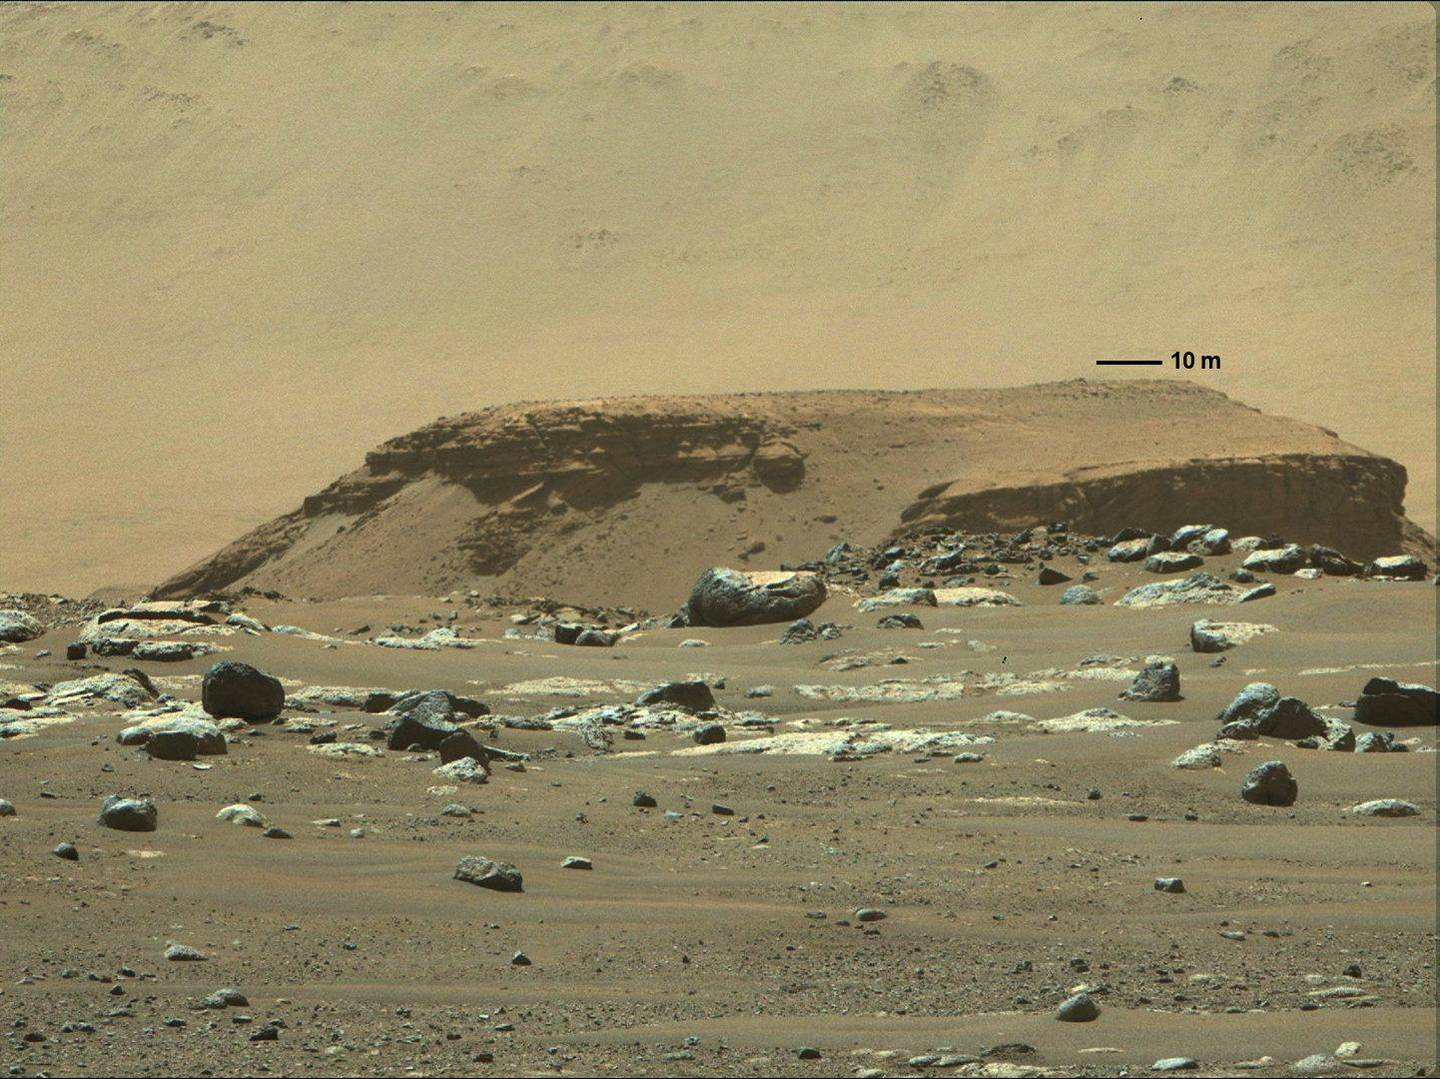 A tall outcropping of rock, with layered deposits of sediments in the distance, marking a remnant of an ancient, long-vanished river delta in Jezero Crater, are pictured in this undated image taken by NASA's Mars rover Perseverance from its landing site, and supplied to Reuters on March 5, 2021. NASA/JPL-Caltech/Handout via REUTERS MANDATORY CREDIT. THIS IMAGE HAS BEEN SUPPLIED BY A THIRD PARTY. MANDATORY CREDIT